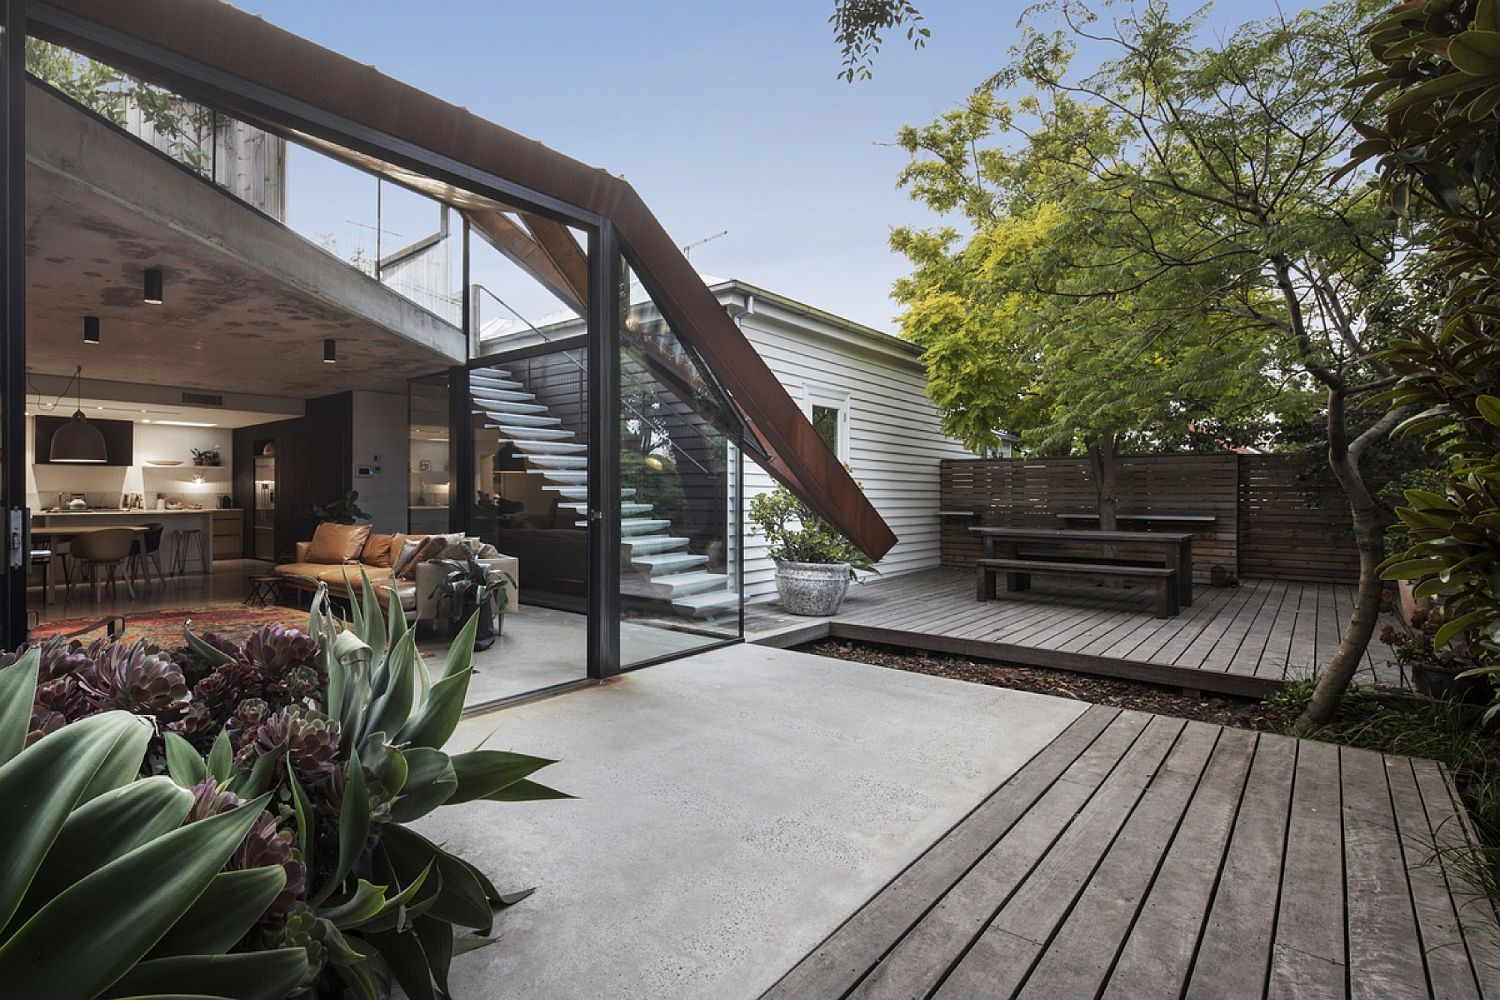 Unique design of the glazed roof brings the landscape inside with ease